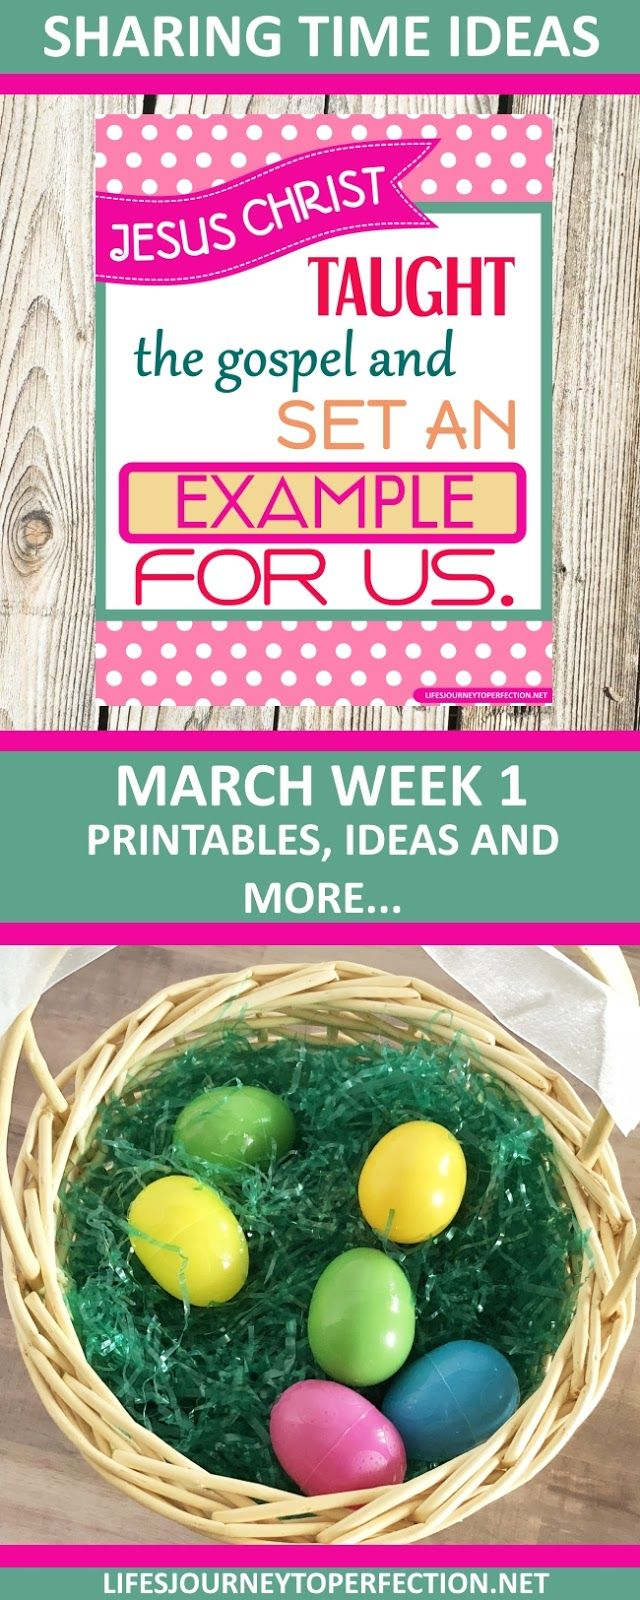 2018 Primary Sharing Time Ideas for March Week 1: Jesus Christ taught the gospel and set an example for us.